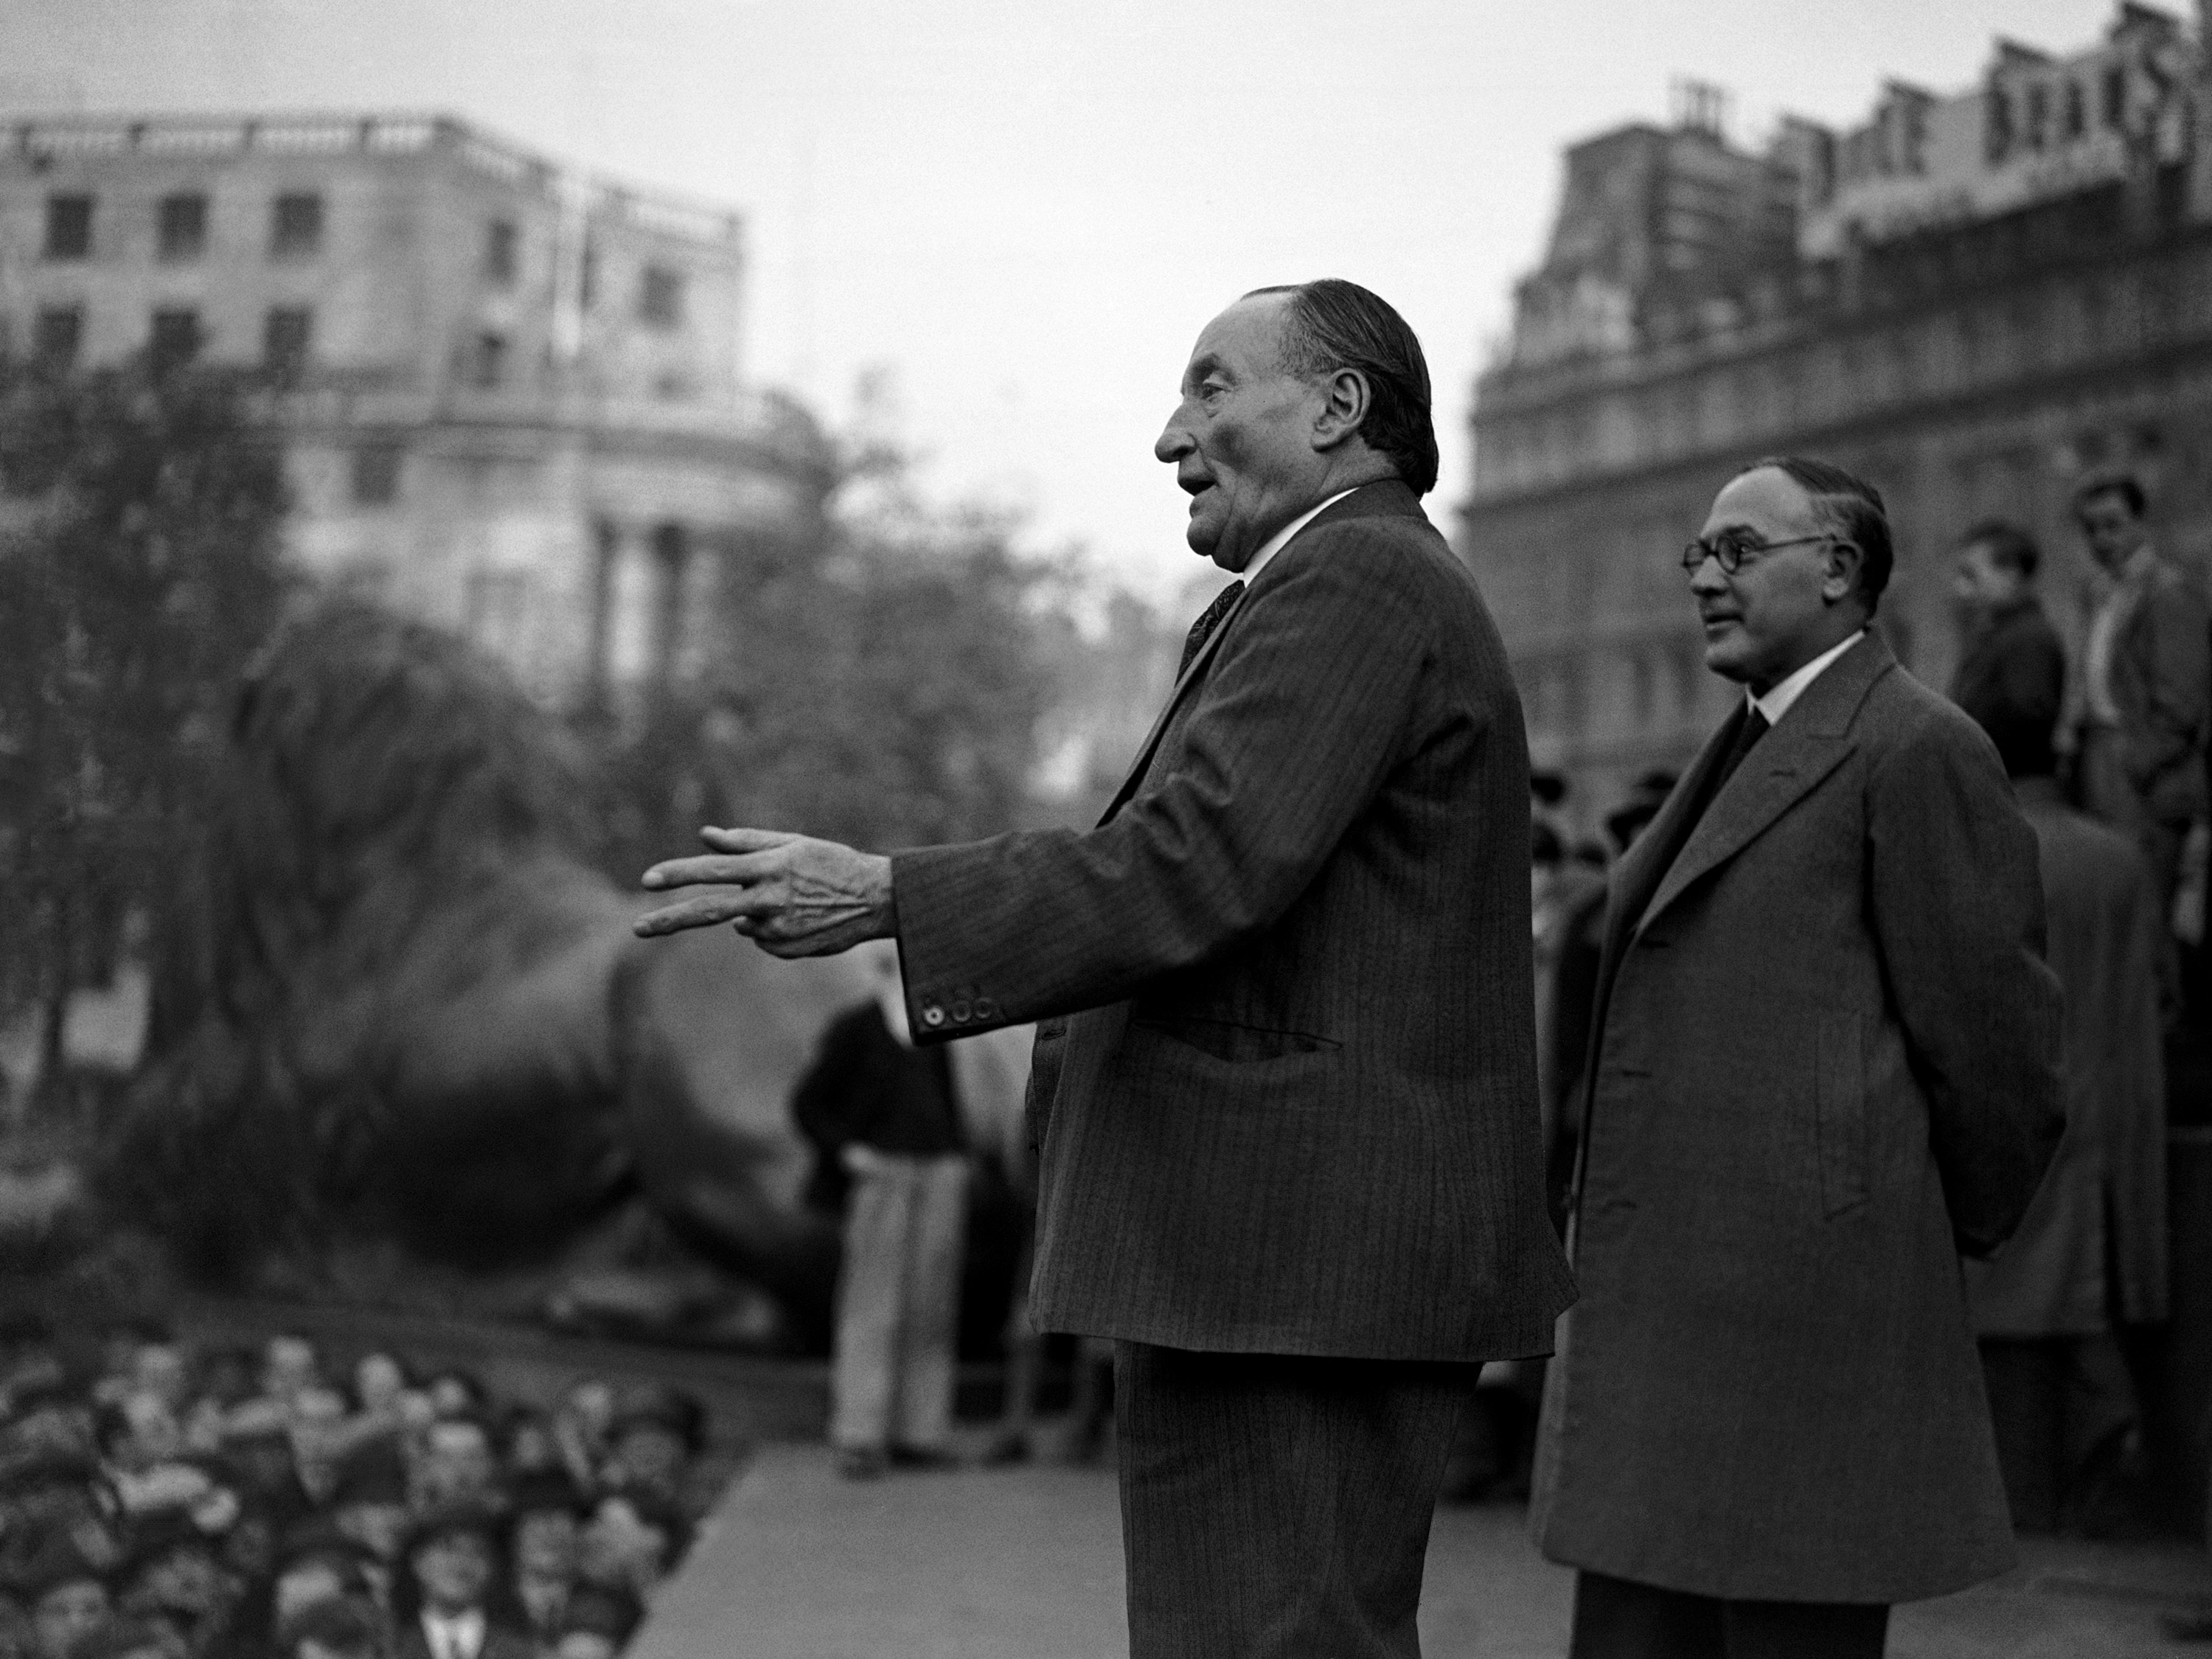 Large crowds spent their Sunday in listening to prominent speakers at a huge mass protest demonstration against Japanese aggression in China, organized in Trafalgar Square by the London labour party and London trades council. Ben Tillett, Veteran labour supporter, addressing the Japanese protest demonstration on Oct. 17, 1937 in Trafalgar Square, London.